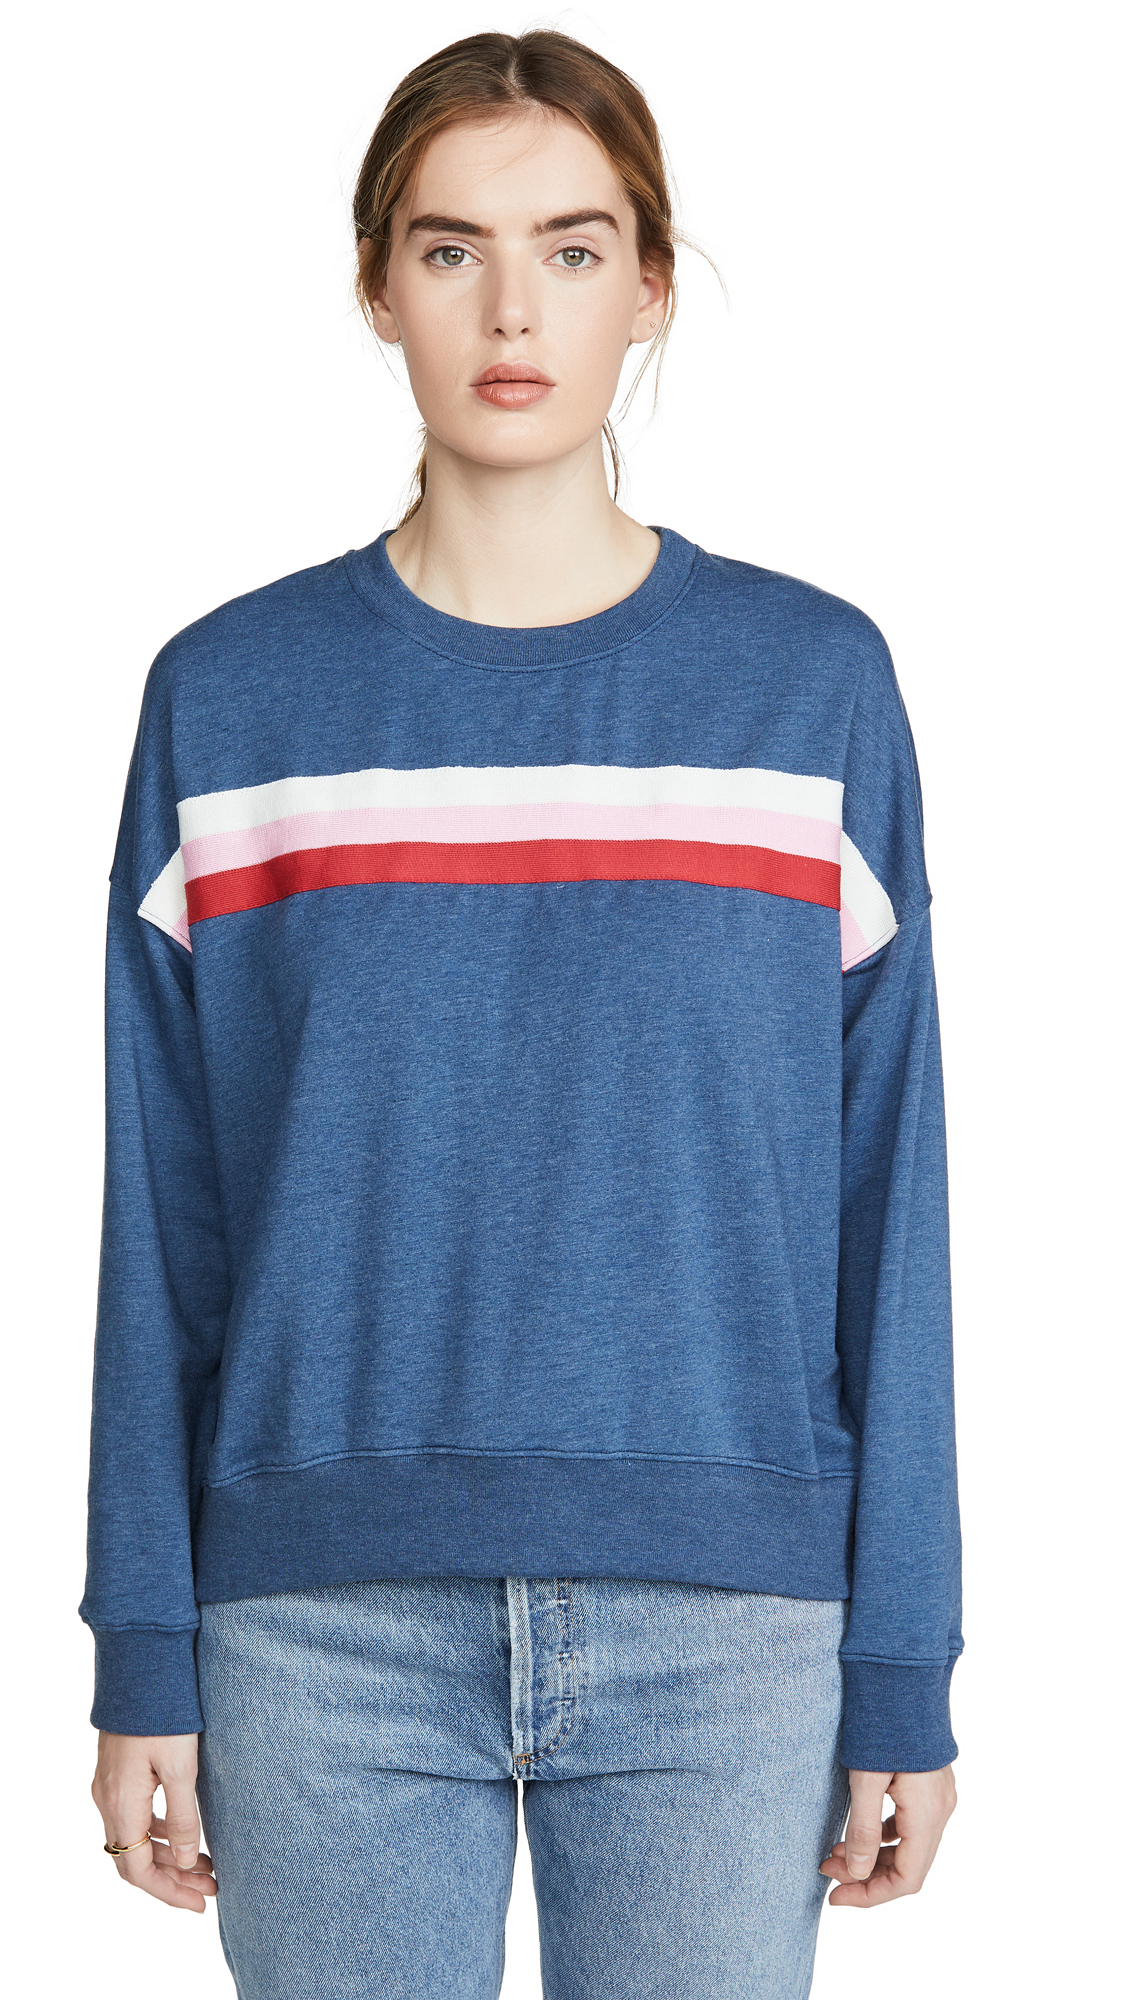 Photo of SUNDRY Oversized Sweatshirt - shop SUNDRY Clothing, Shirts, Tops online